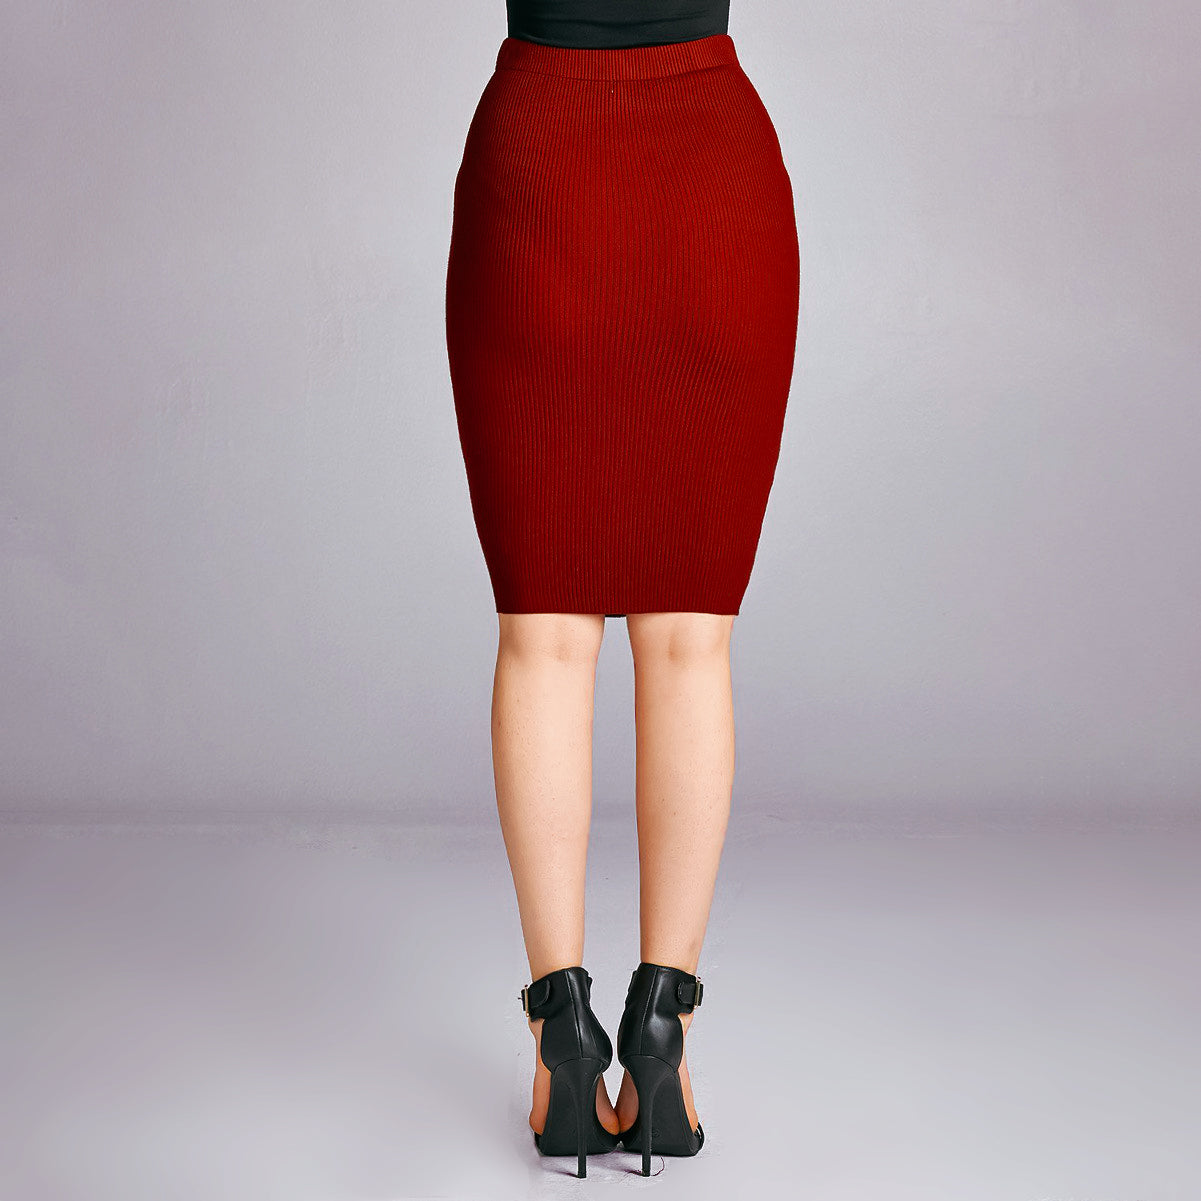 Back view Red Bodycon Skirt Dulce Boutique